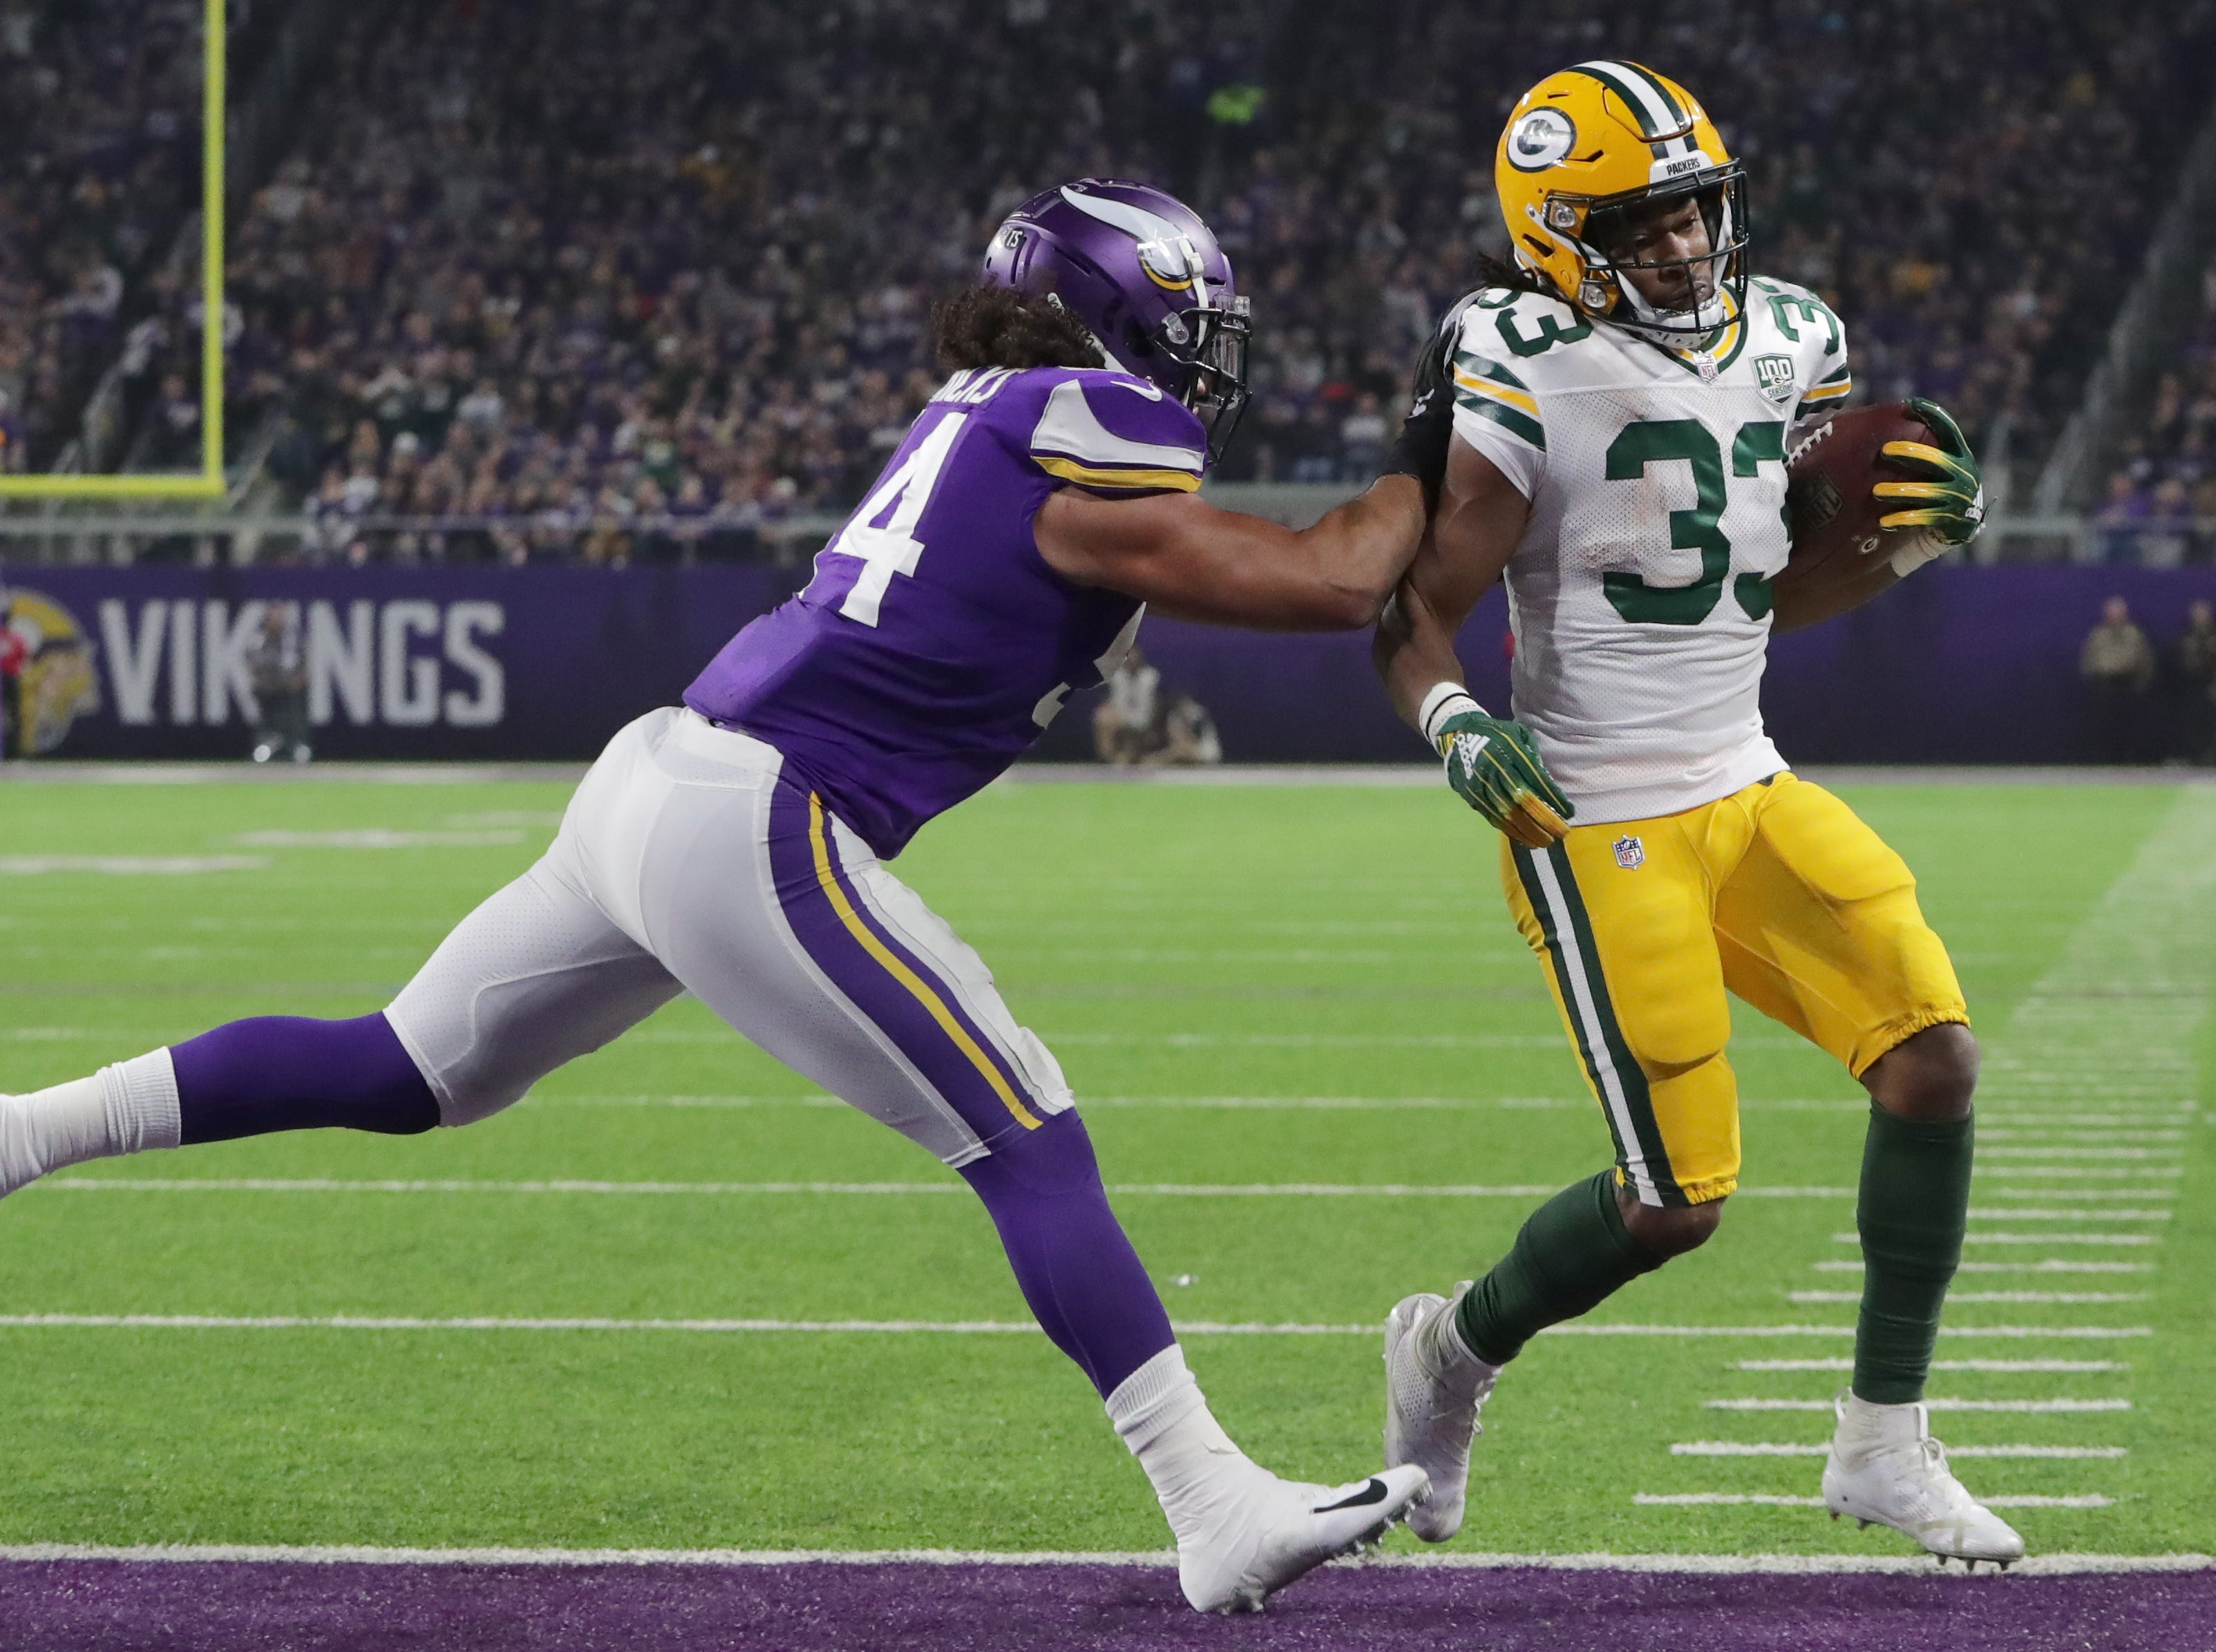 Green Bay Packers running back Aaron Jones (33) scores on a six yard run during despite the efforts of Minnesota Vikings middle linebacker Eric Kendricks (54) during the quarter of their game against the Minnesota Vikings Sunday, November 25, 2018 at U.S. Bank Stadium in Minneapolis, Minn.